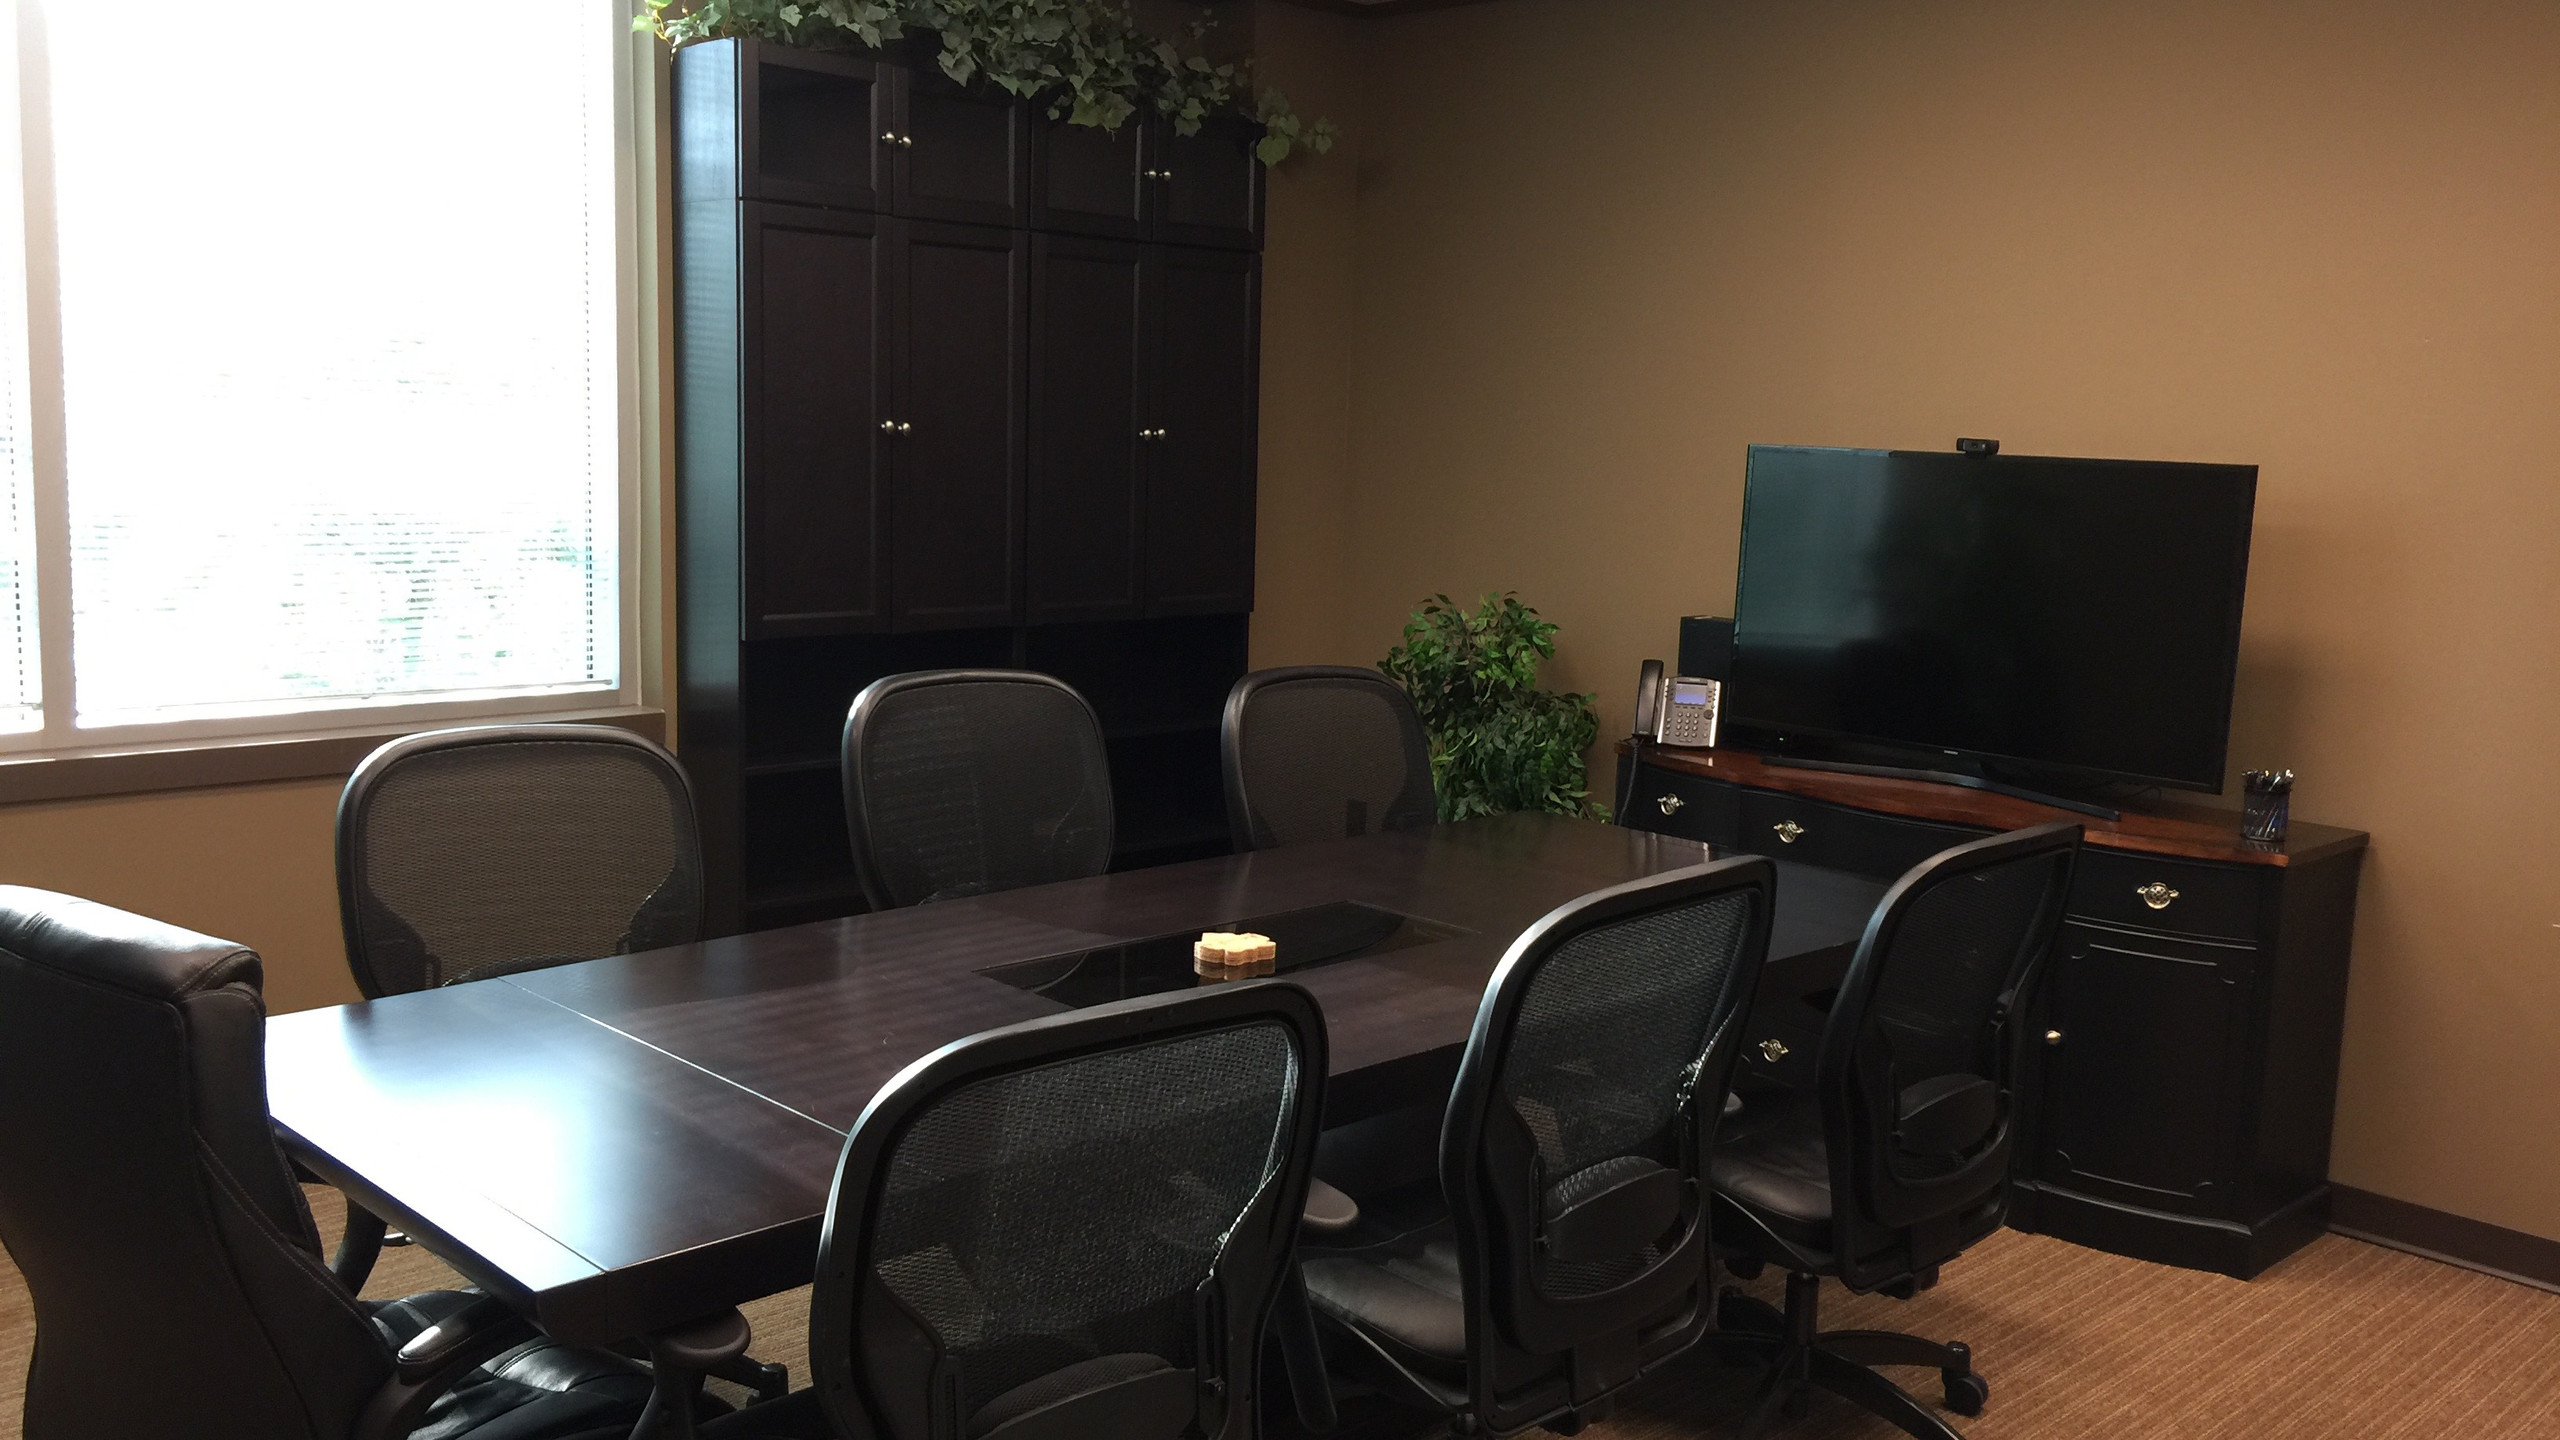 LEGACY LAW GROUP Boardroom